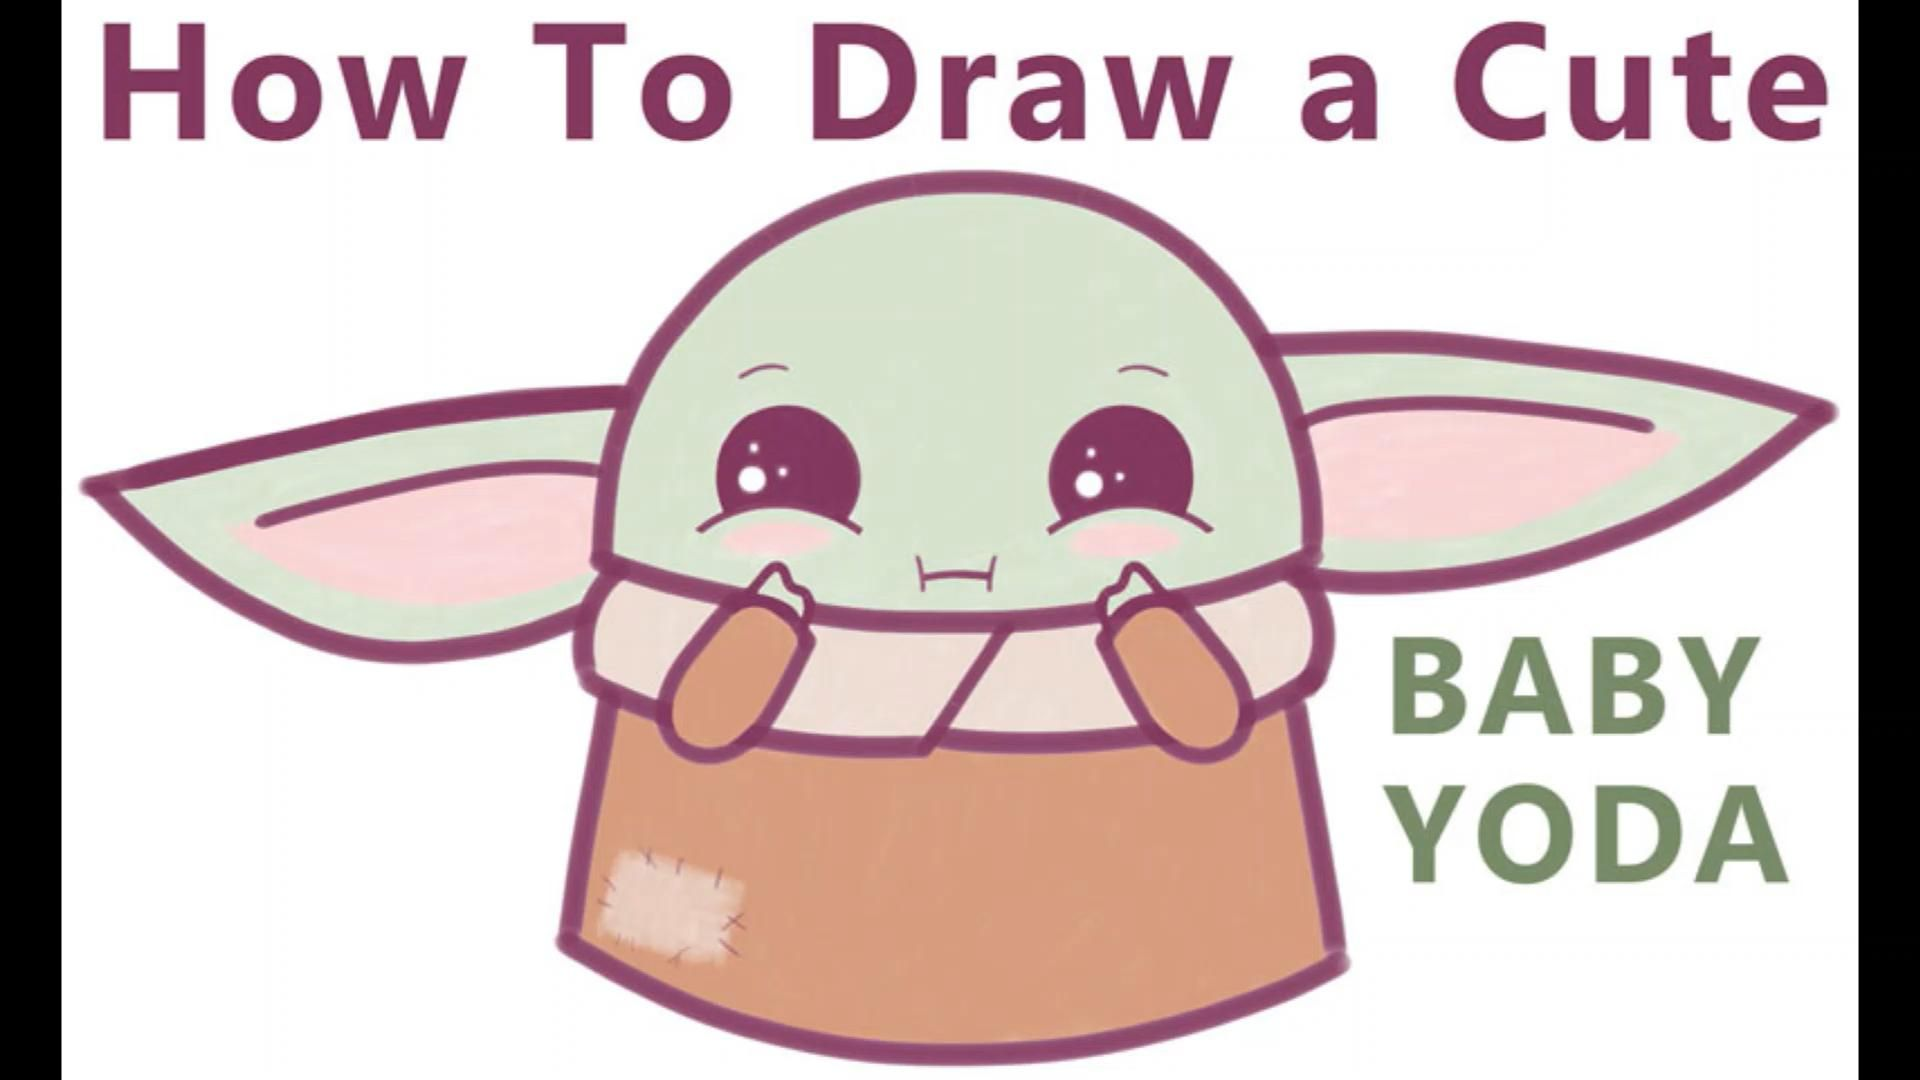 How To Draw A Cute Cartoon Baby Yoda Kawaii Chibi Easy Step By Step Drawing Tutorial How To Draw Step By Step Drawing Tutorials Cute Easy Drawings Funny Easy